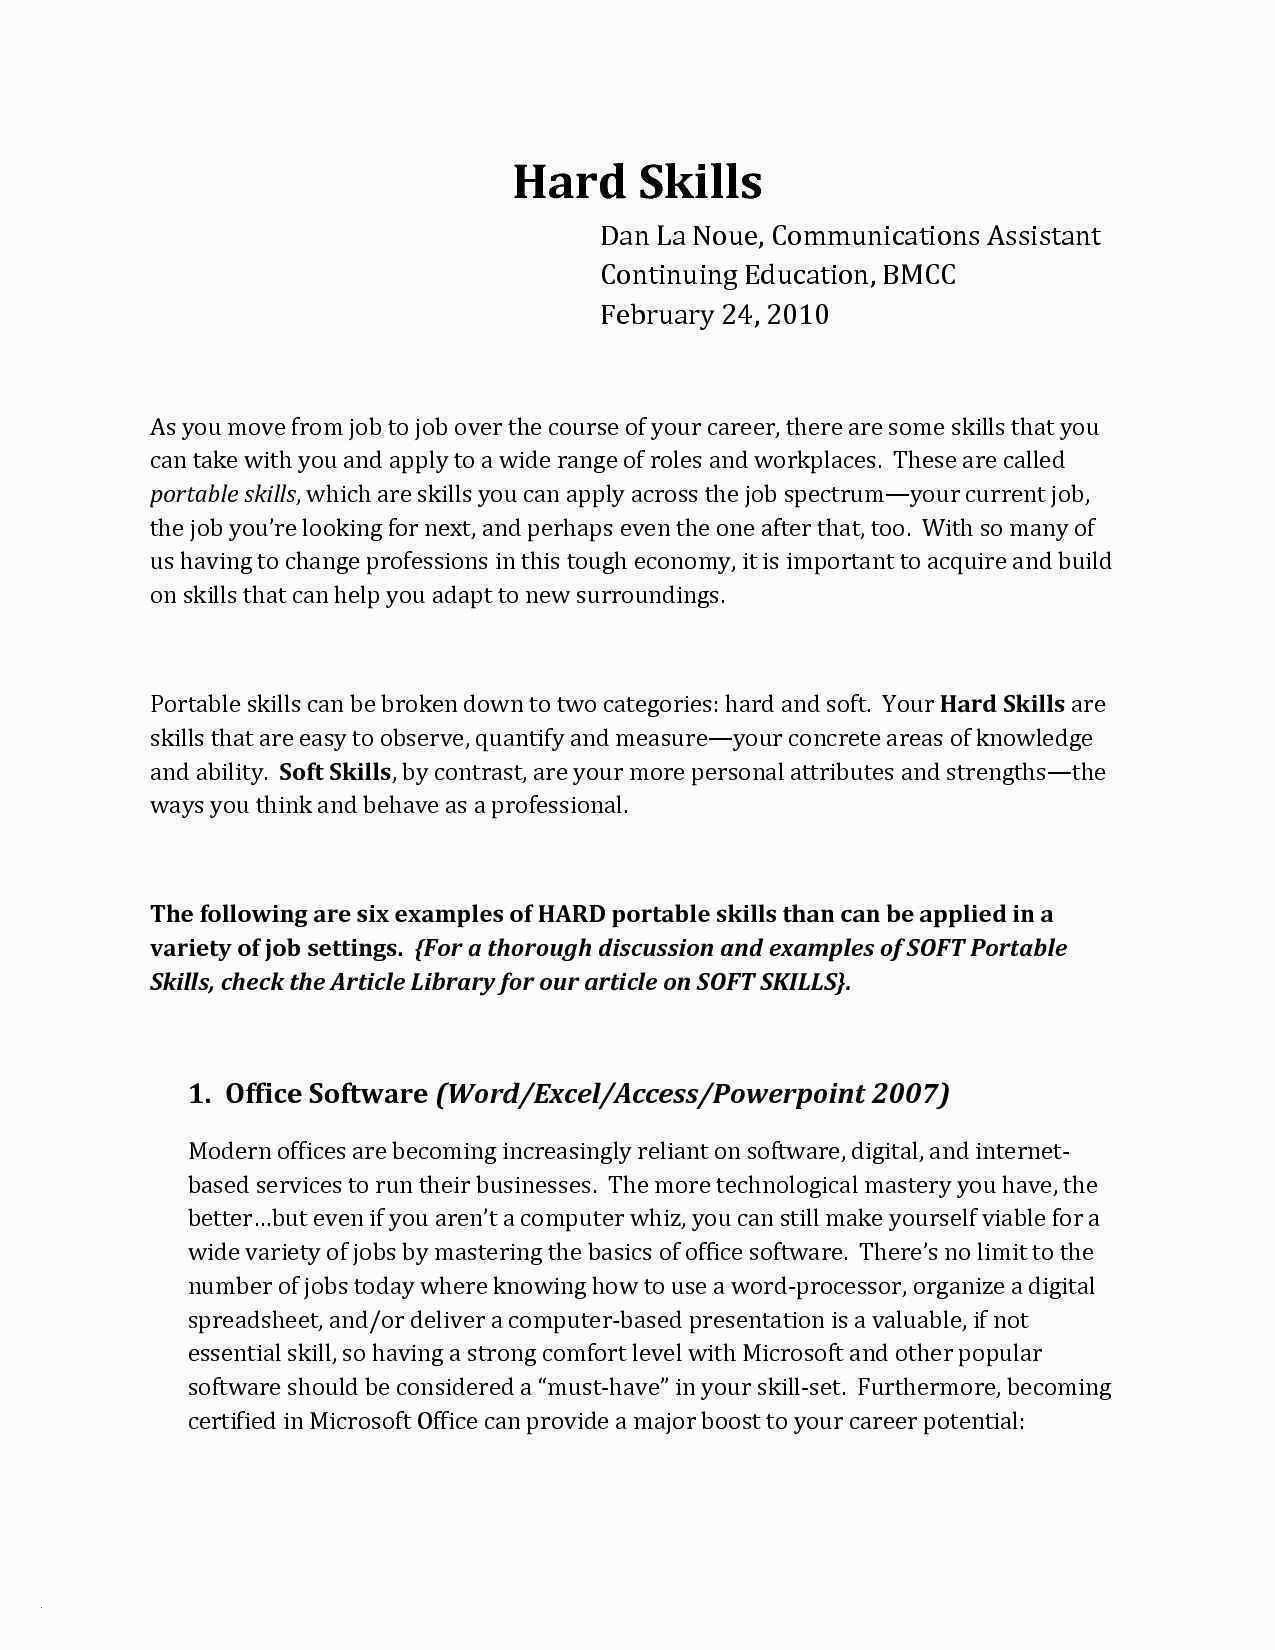 Resume Words Skills  Skills Words For Resume Professional Soft Skills Examples In Resume